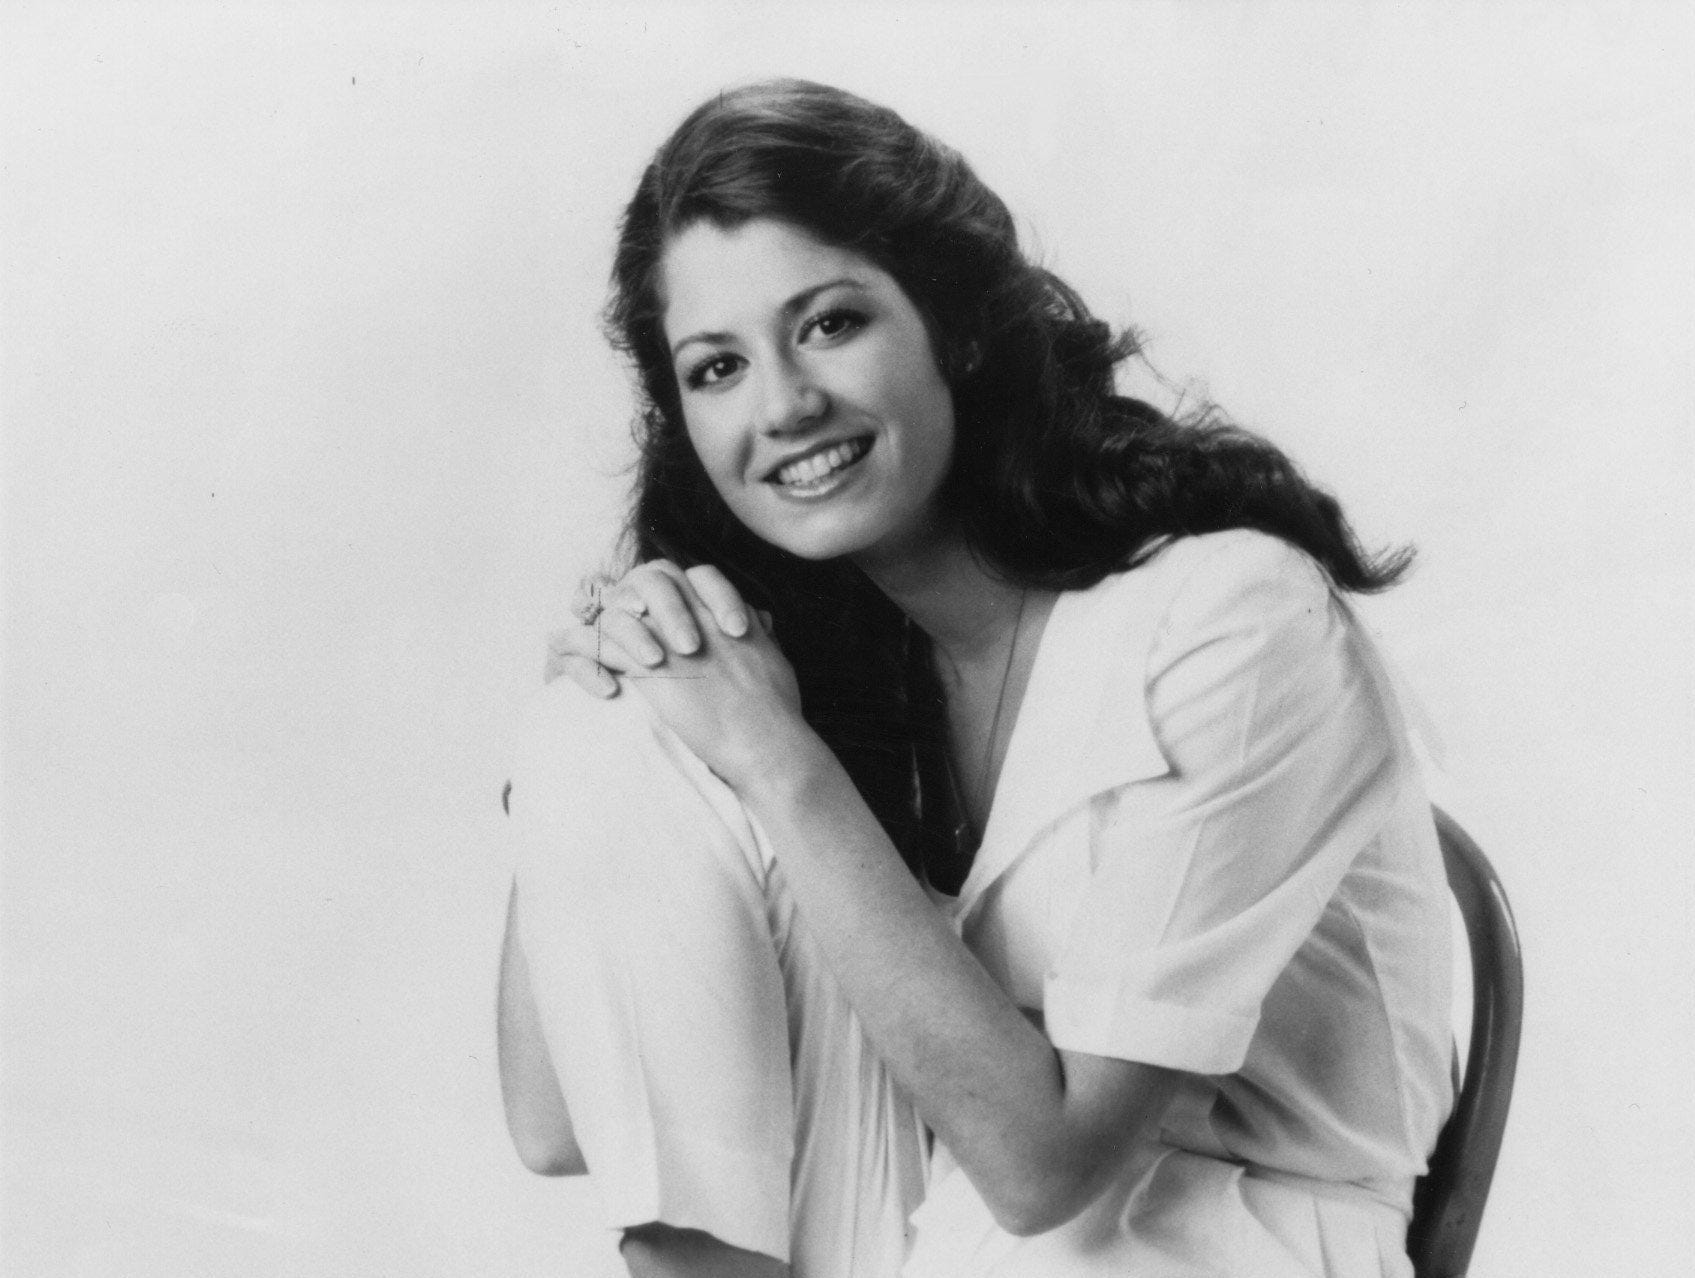 Amy Grant in a 1984 promotional image.